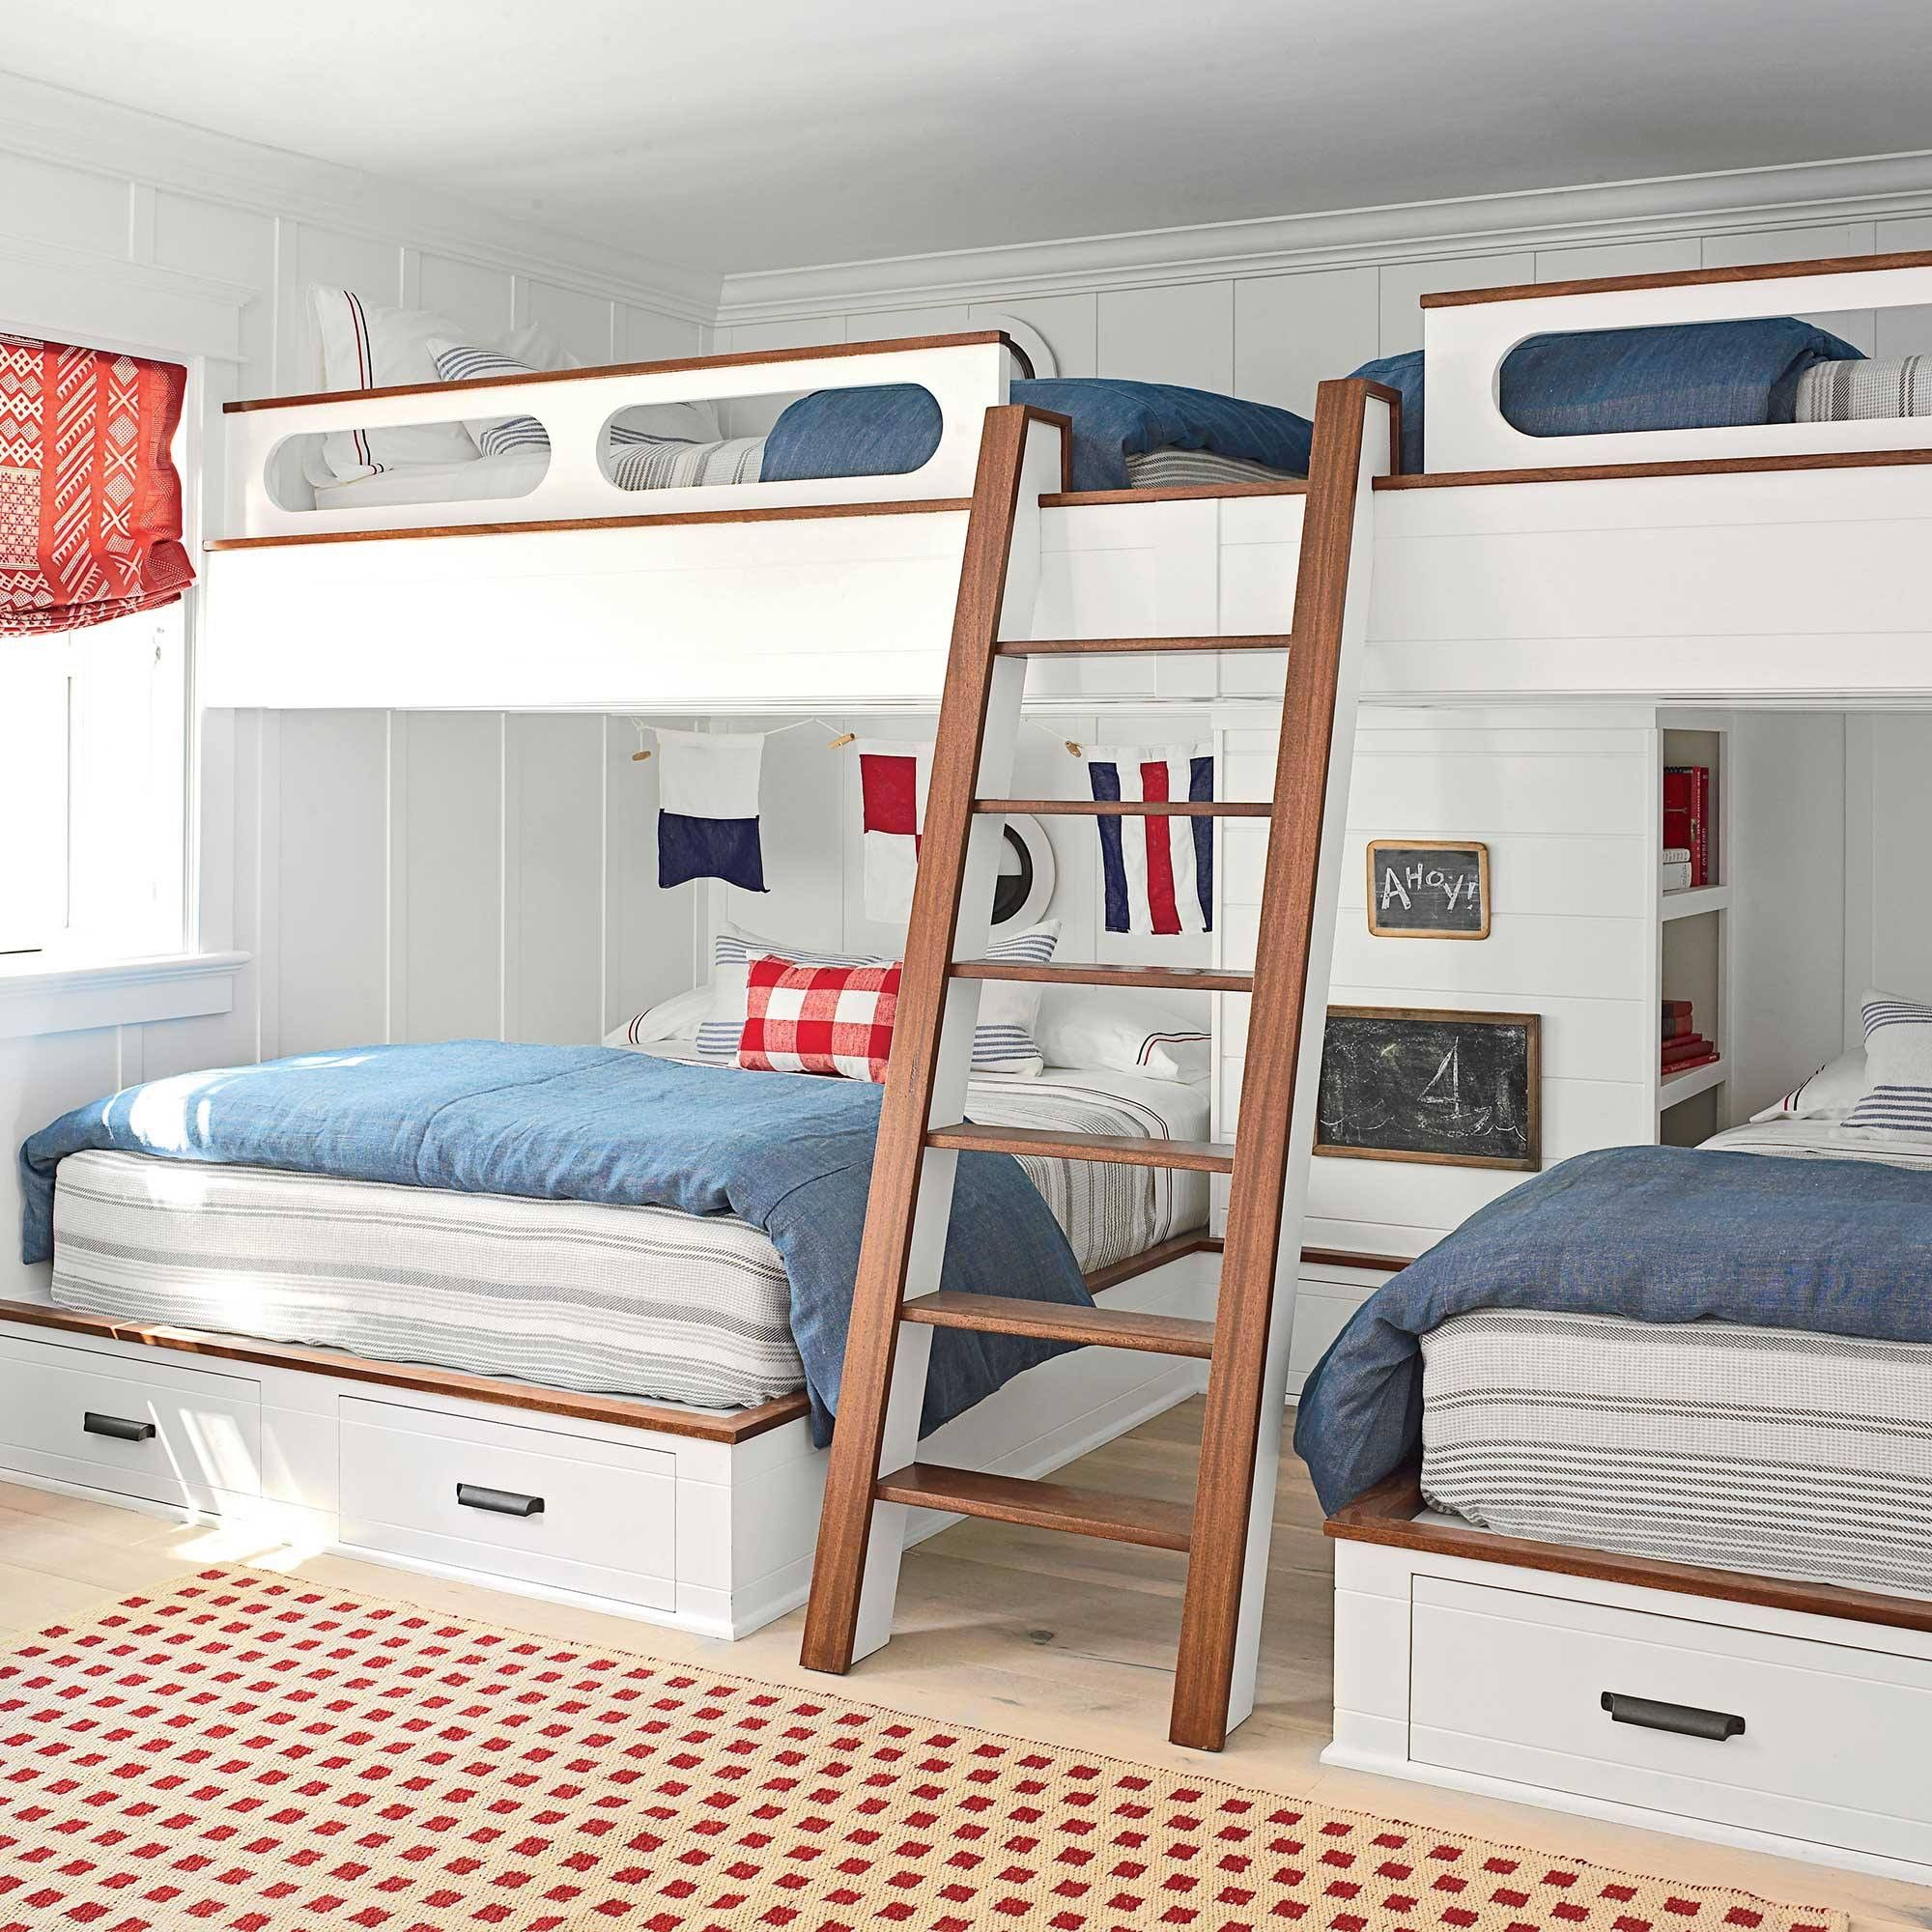 Built In Furniture For Bedrooms: Pin By Wei Zhang On Huntington Harbor